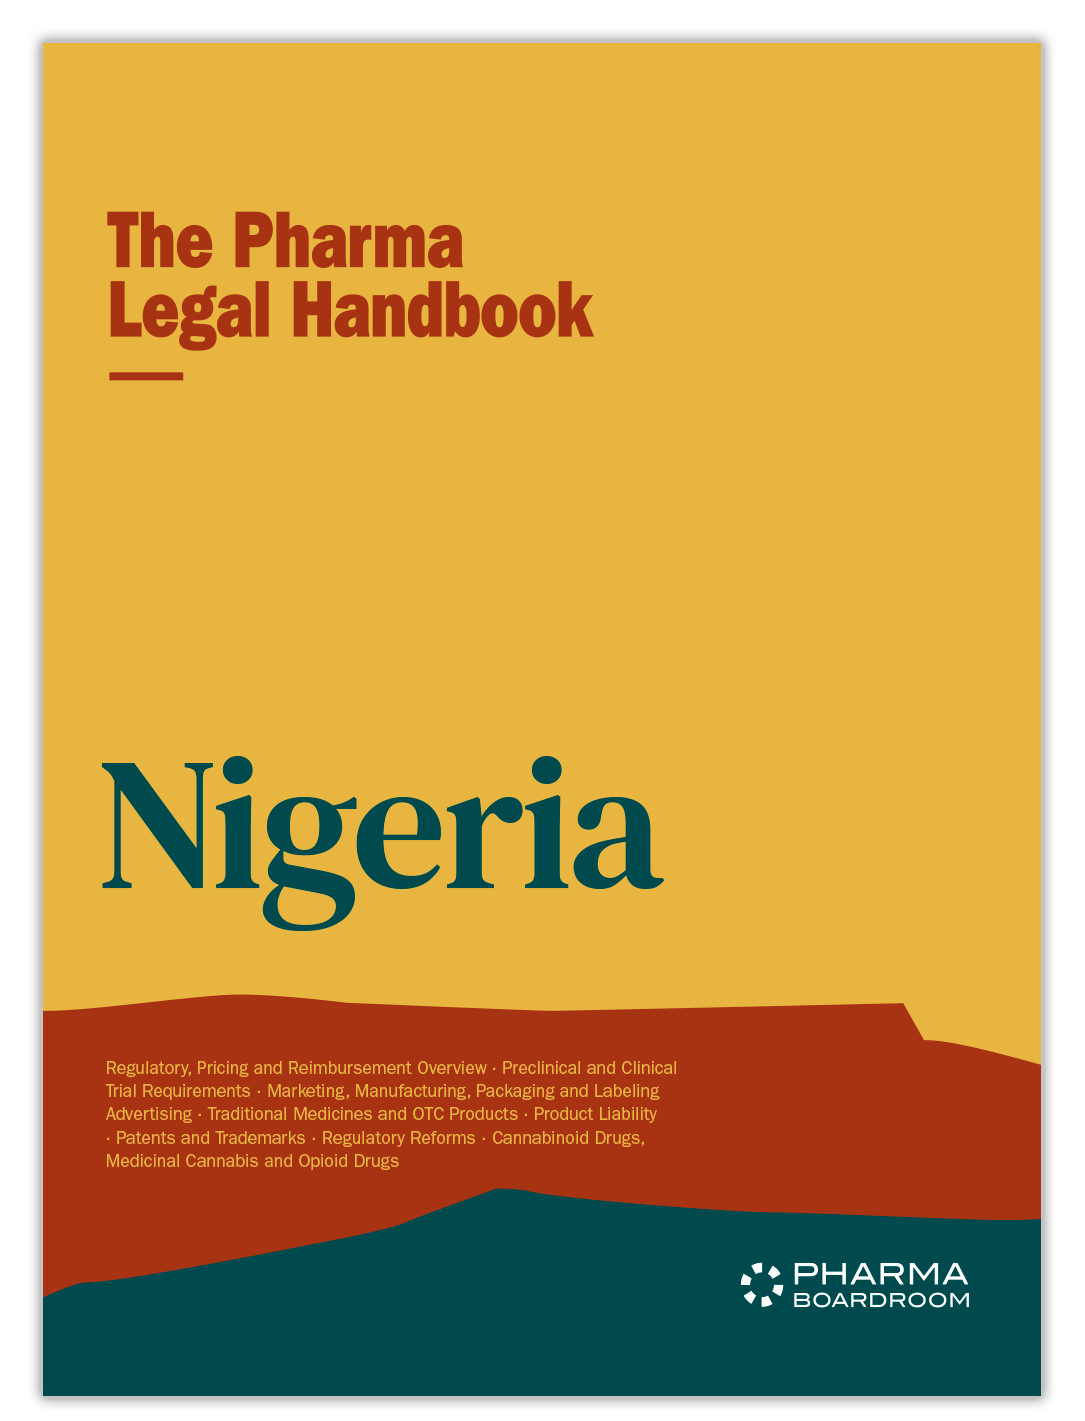 The Pharma Legal Handbook: Nigeria